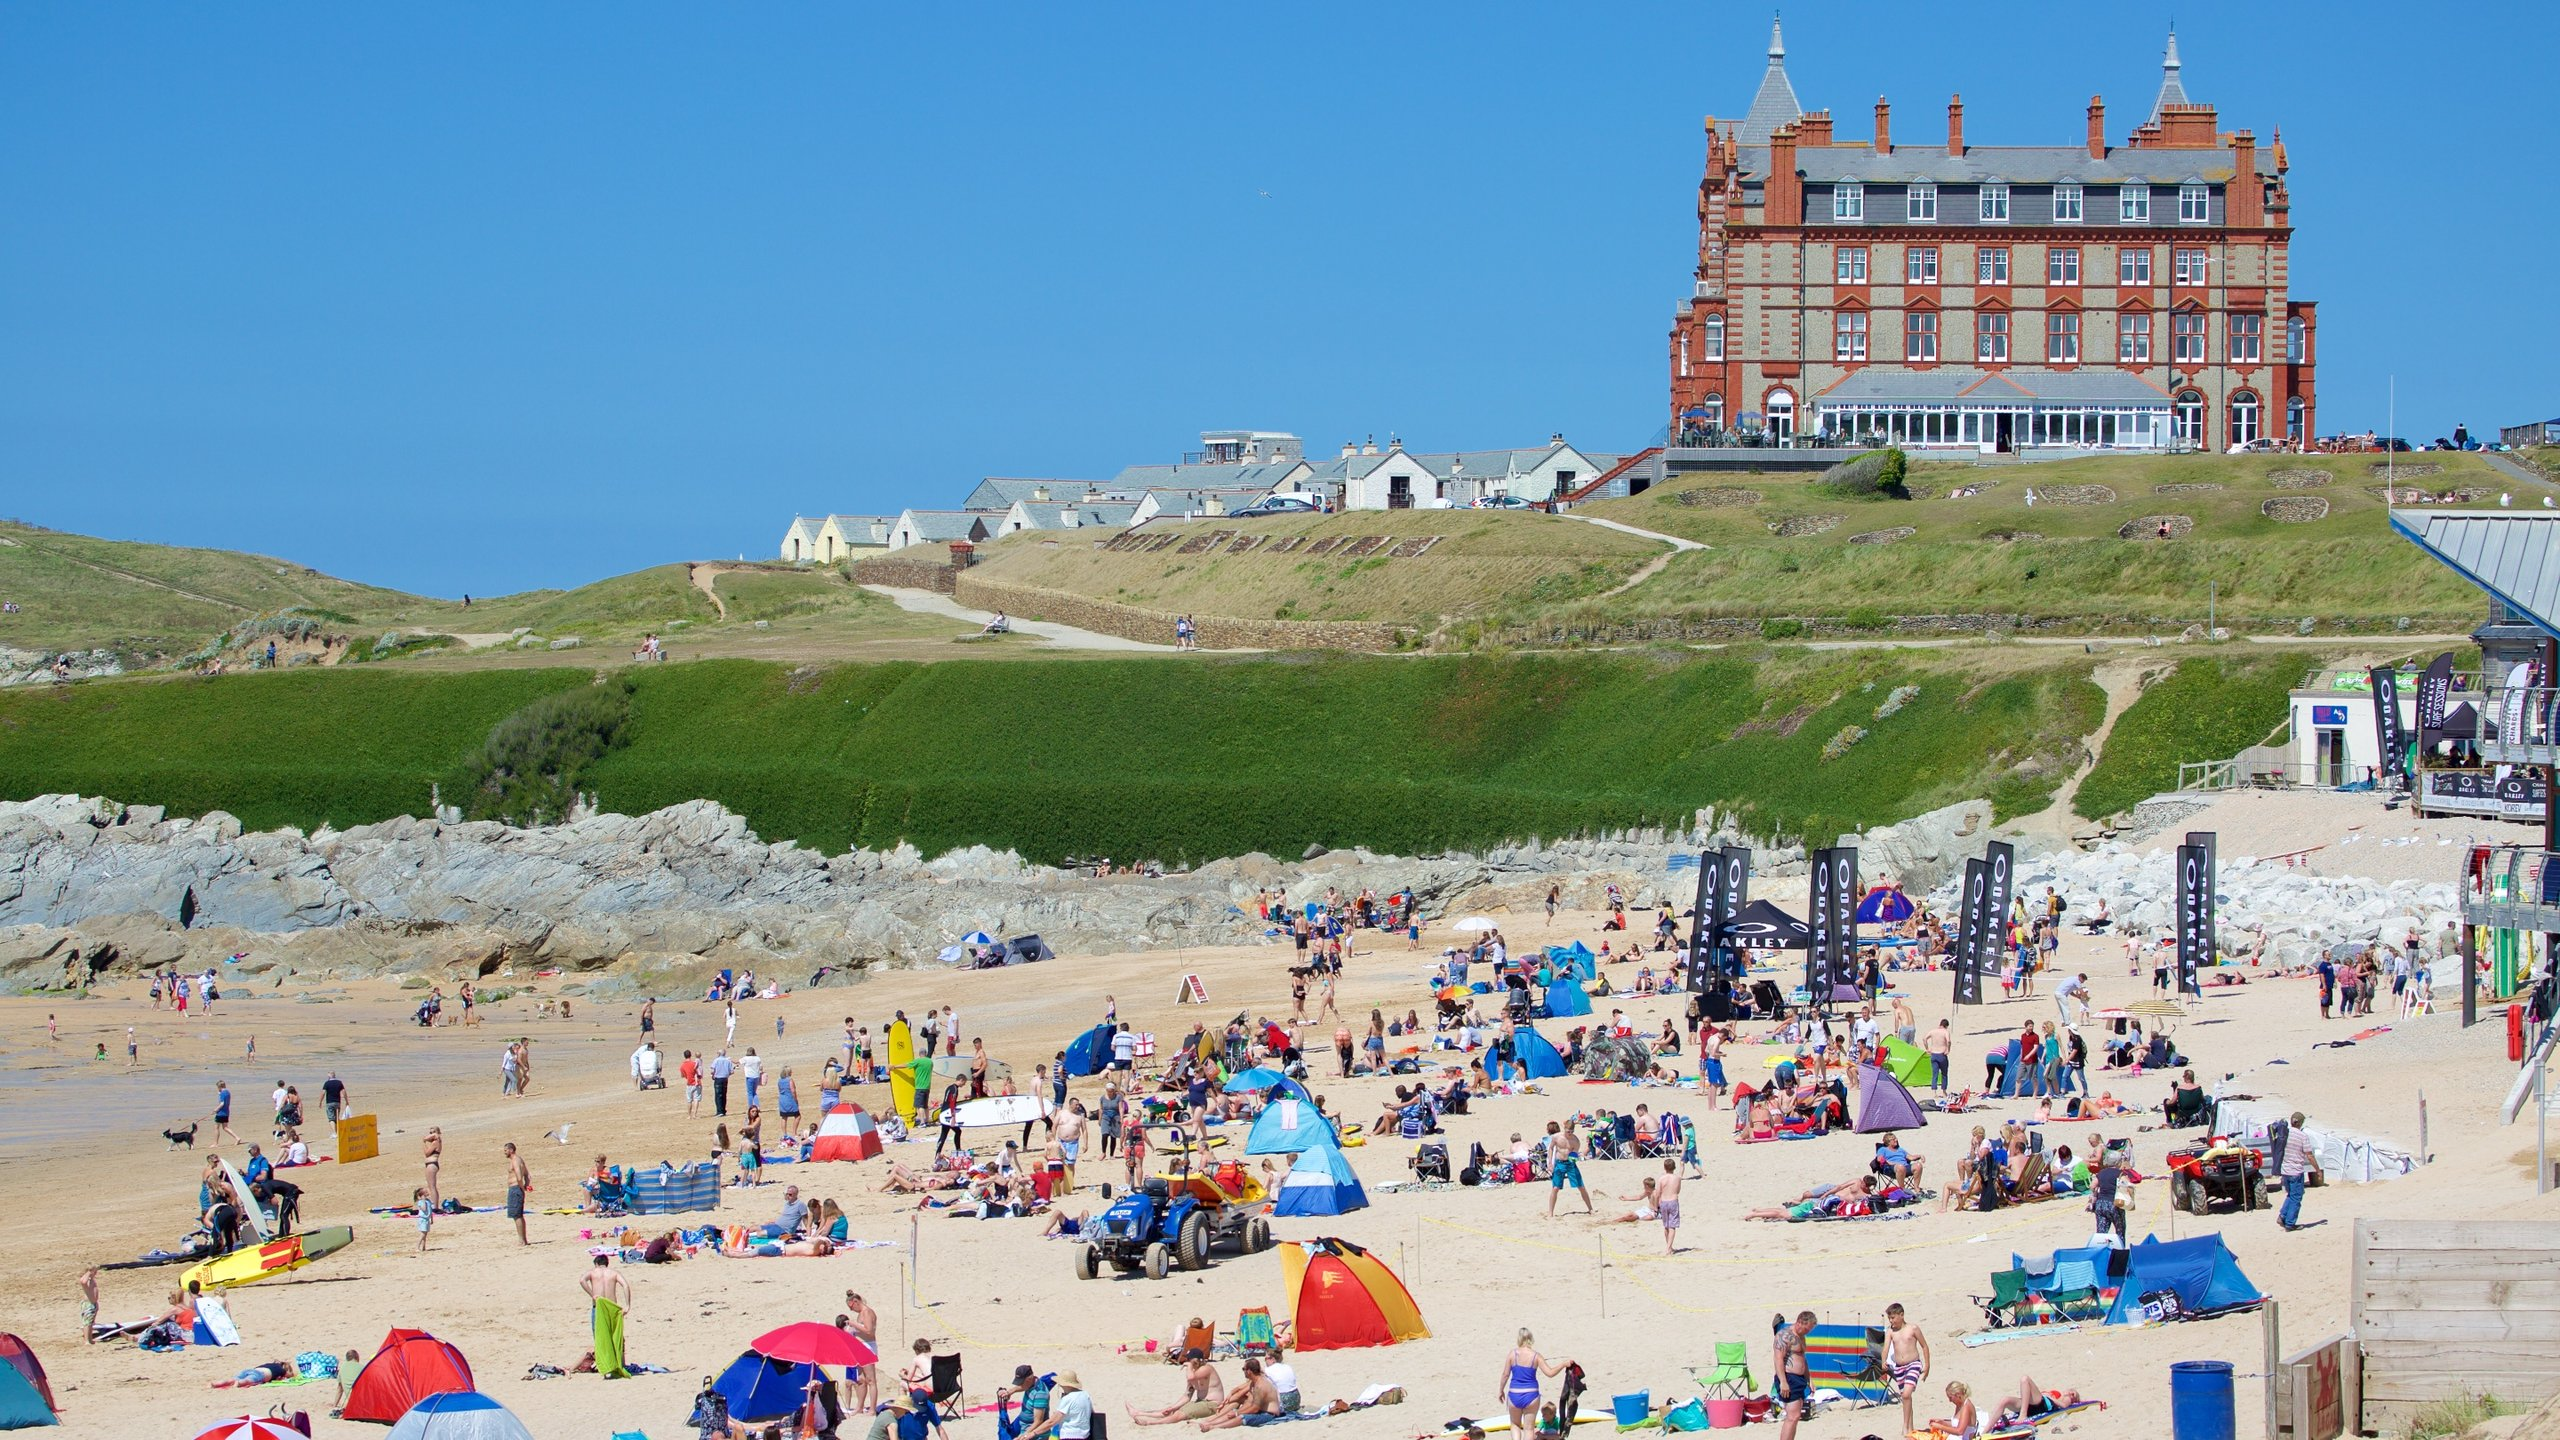 Top 10 newquay hotels with a swimming pool from 55 2019 - Hotels with swimming pools cornwall ...